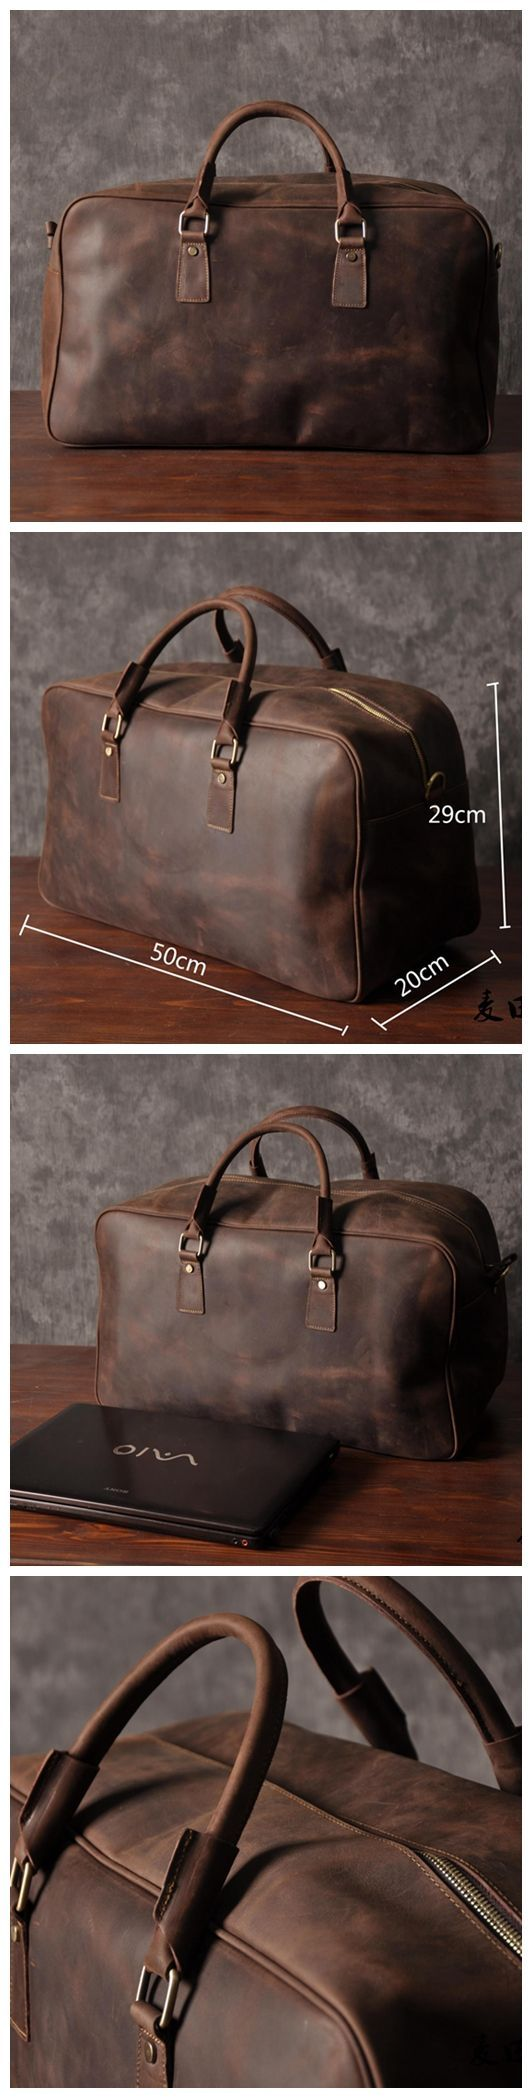 White leather apron lecture - Handcrafted Antique Style Real Leather Travel Bag Duffle Bag Holdall Luggage Bag 7156